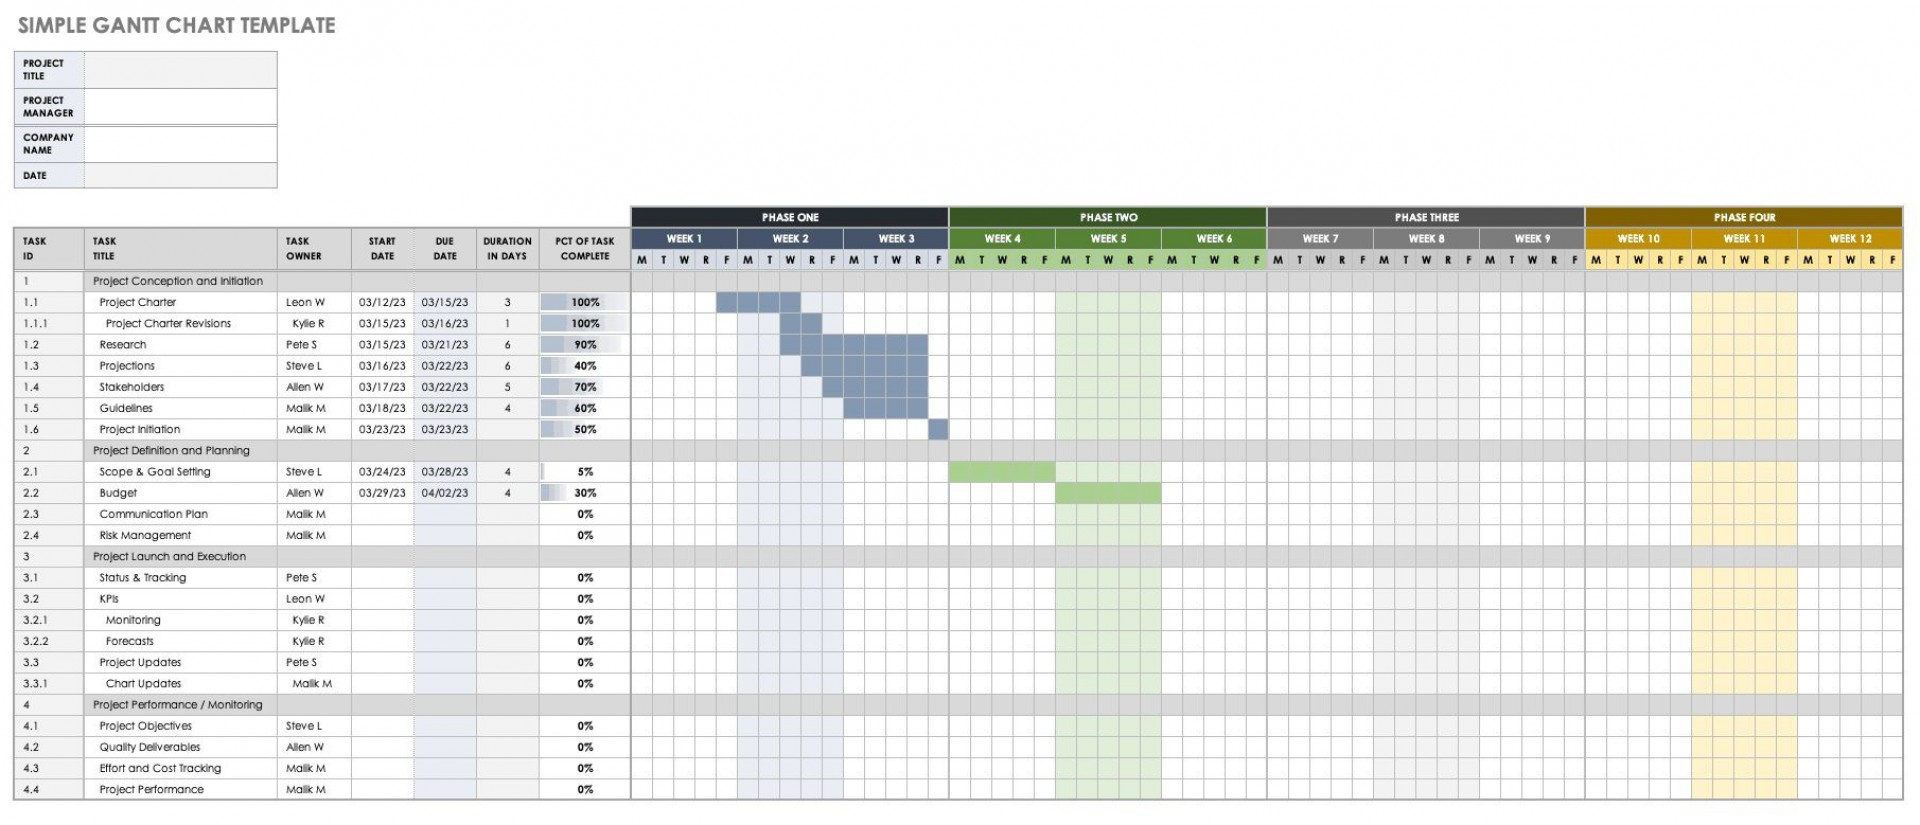 009 Wondrou Gantt Chart Excel Template Download Image  Microsoft 2010 Free Simple1920